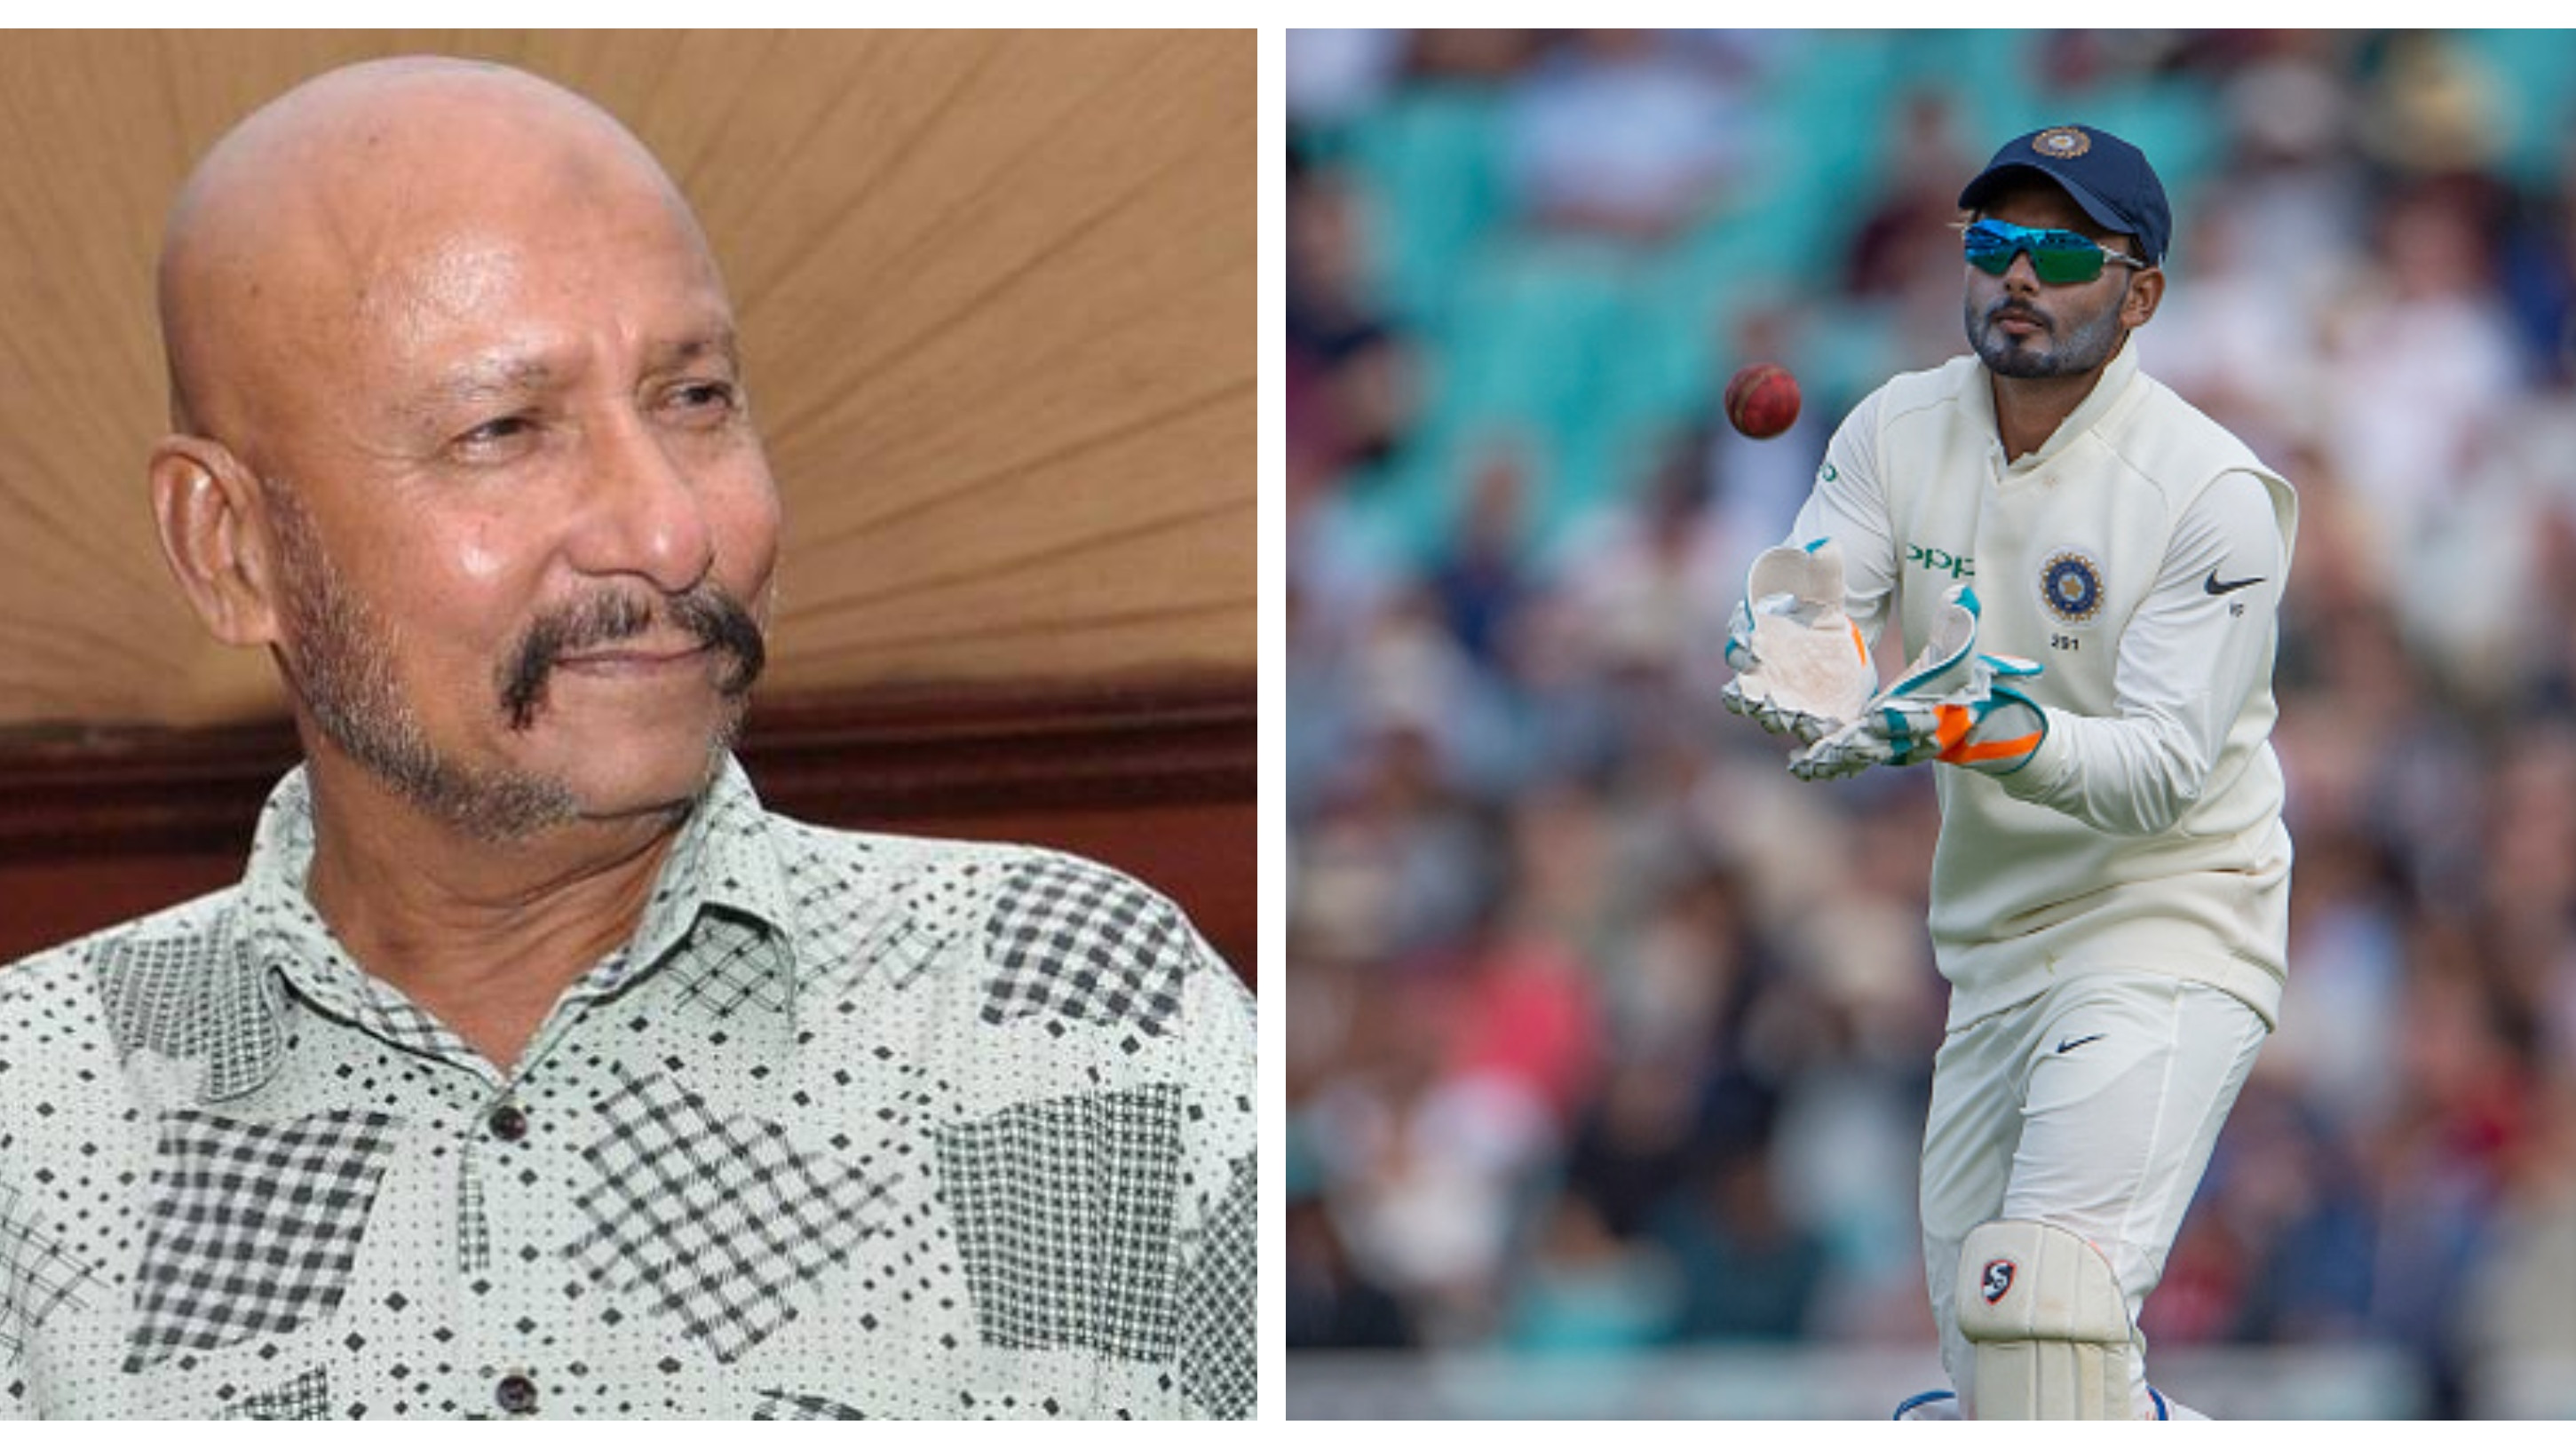 Rishabh Pant will be indispensable if he improves his wicket-keeping, says Syed Kirmani